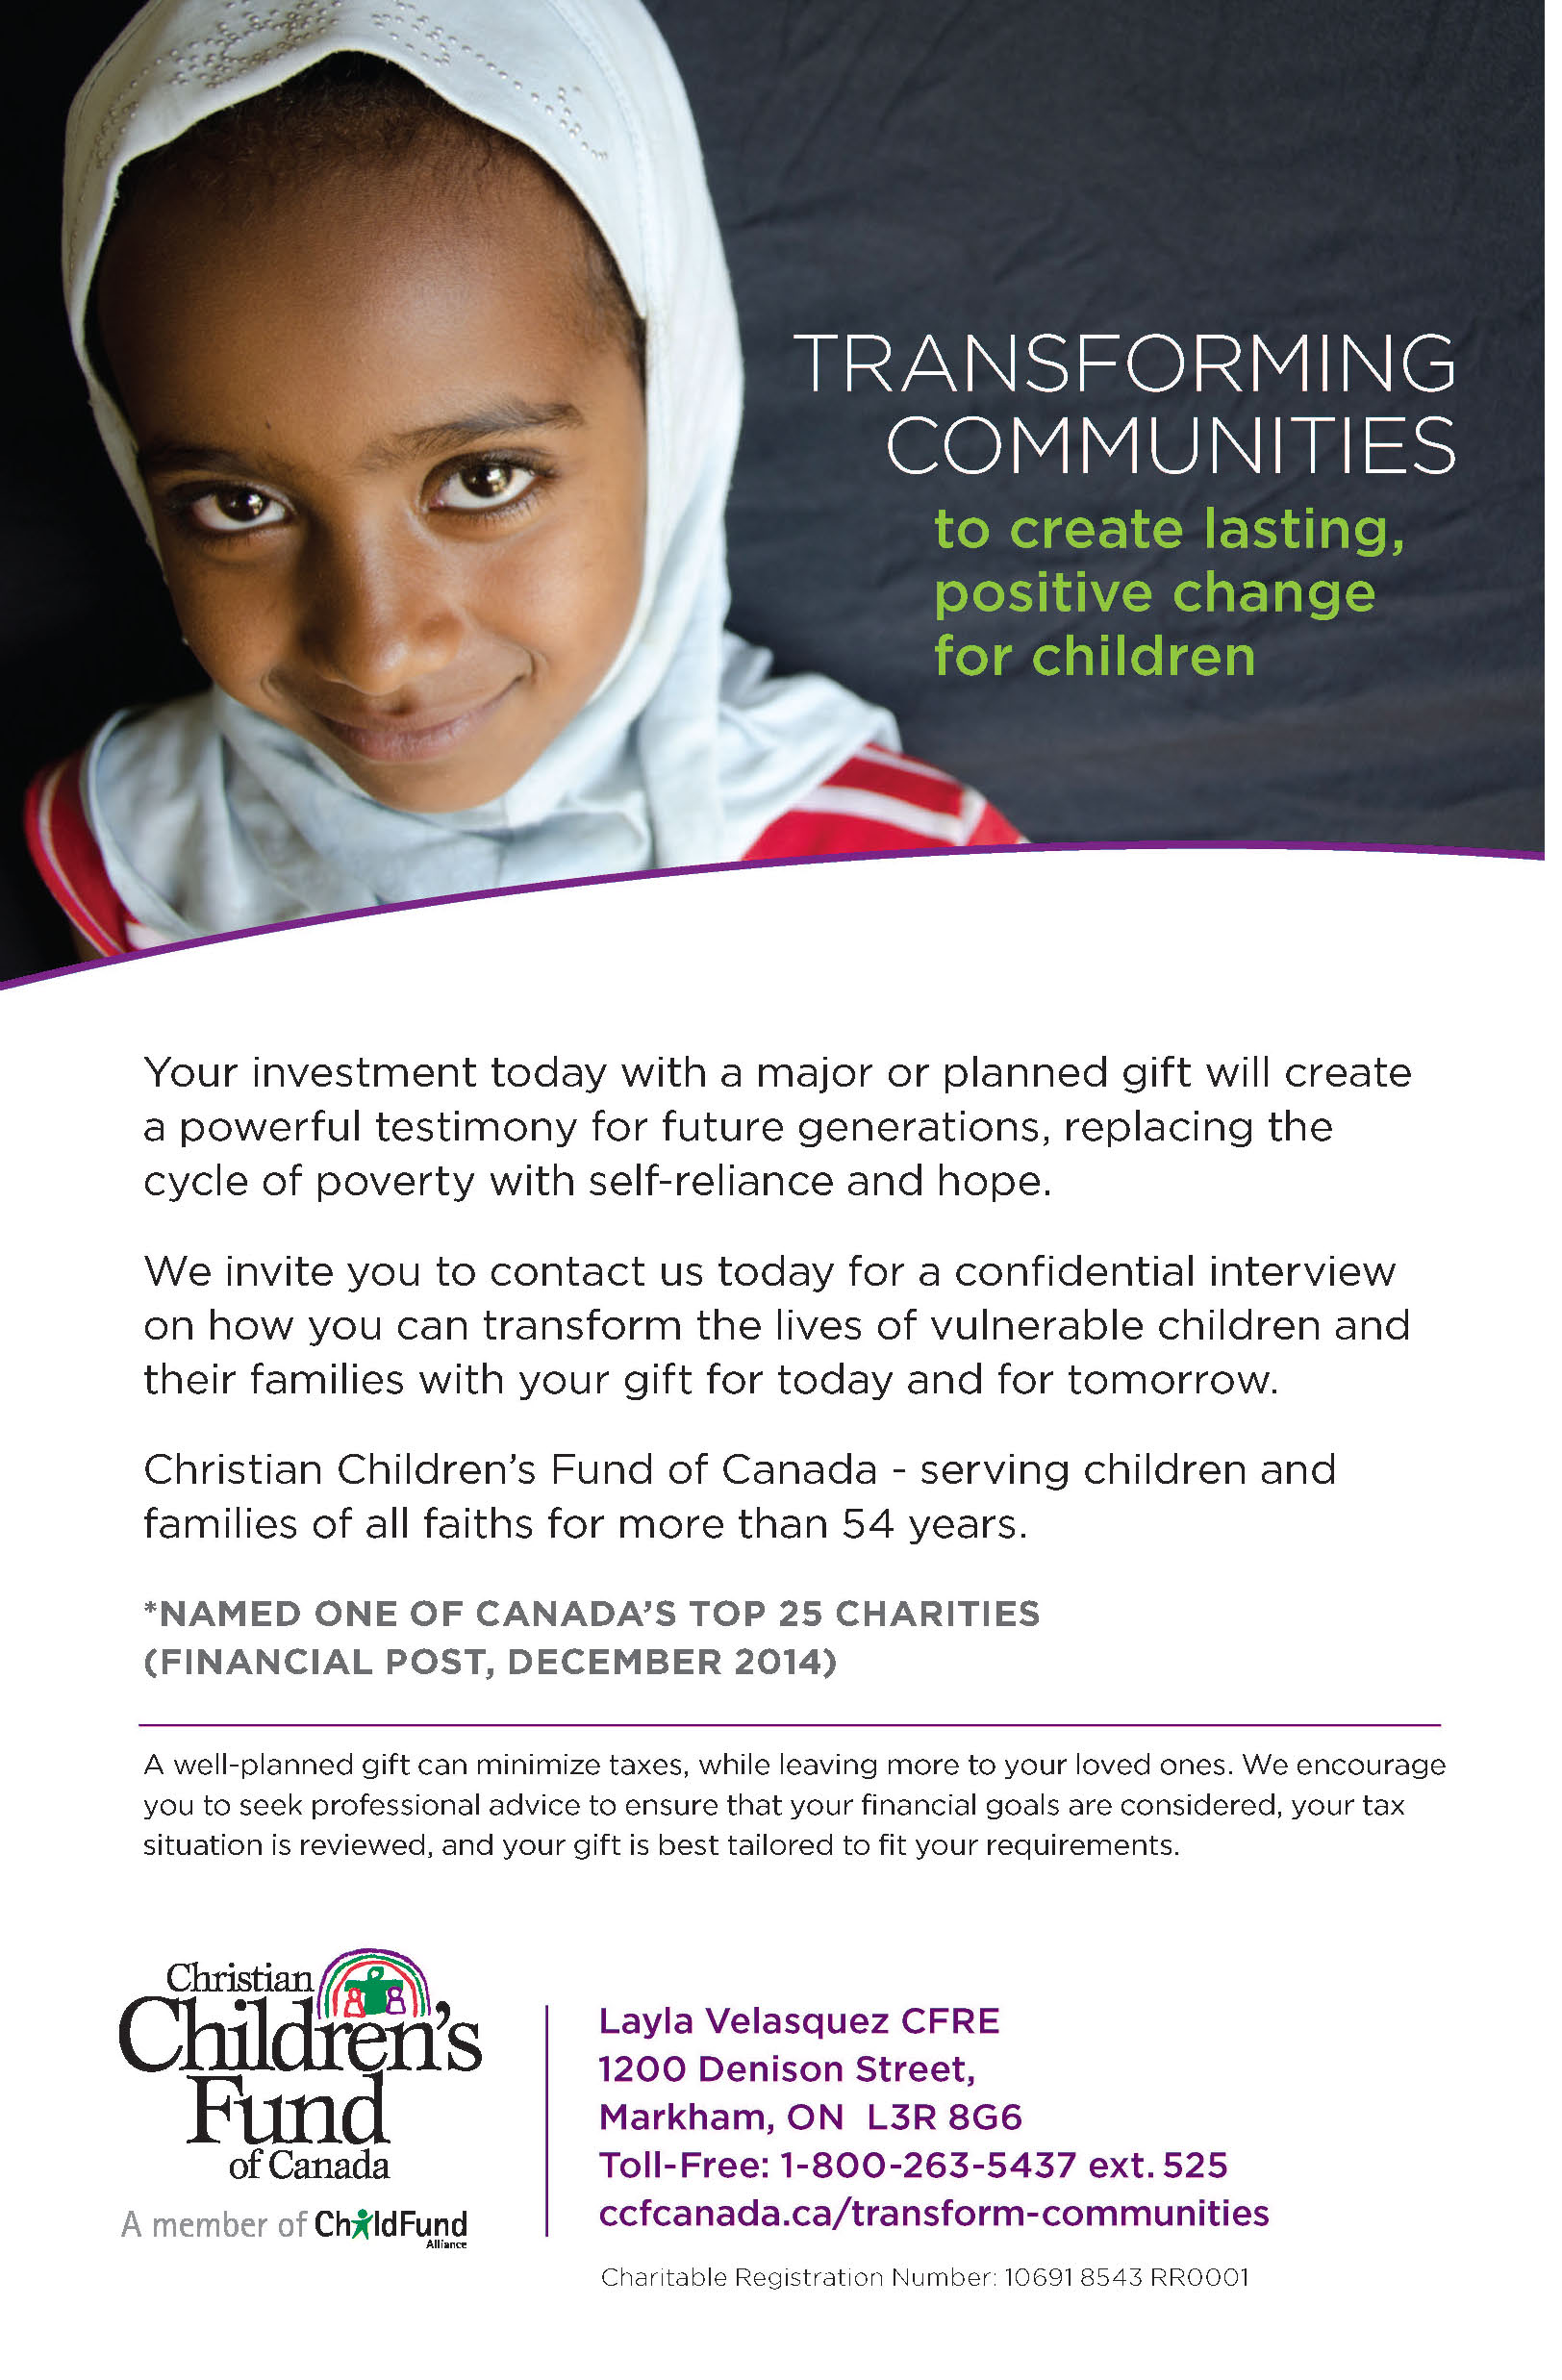 Christian Childrens Fund of Canada 2015.jpg